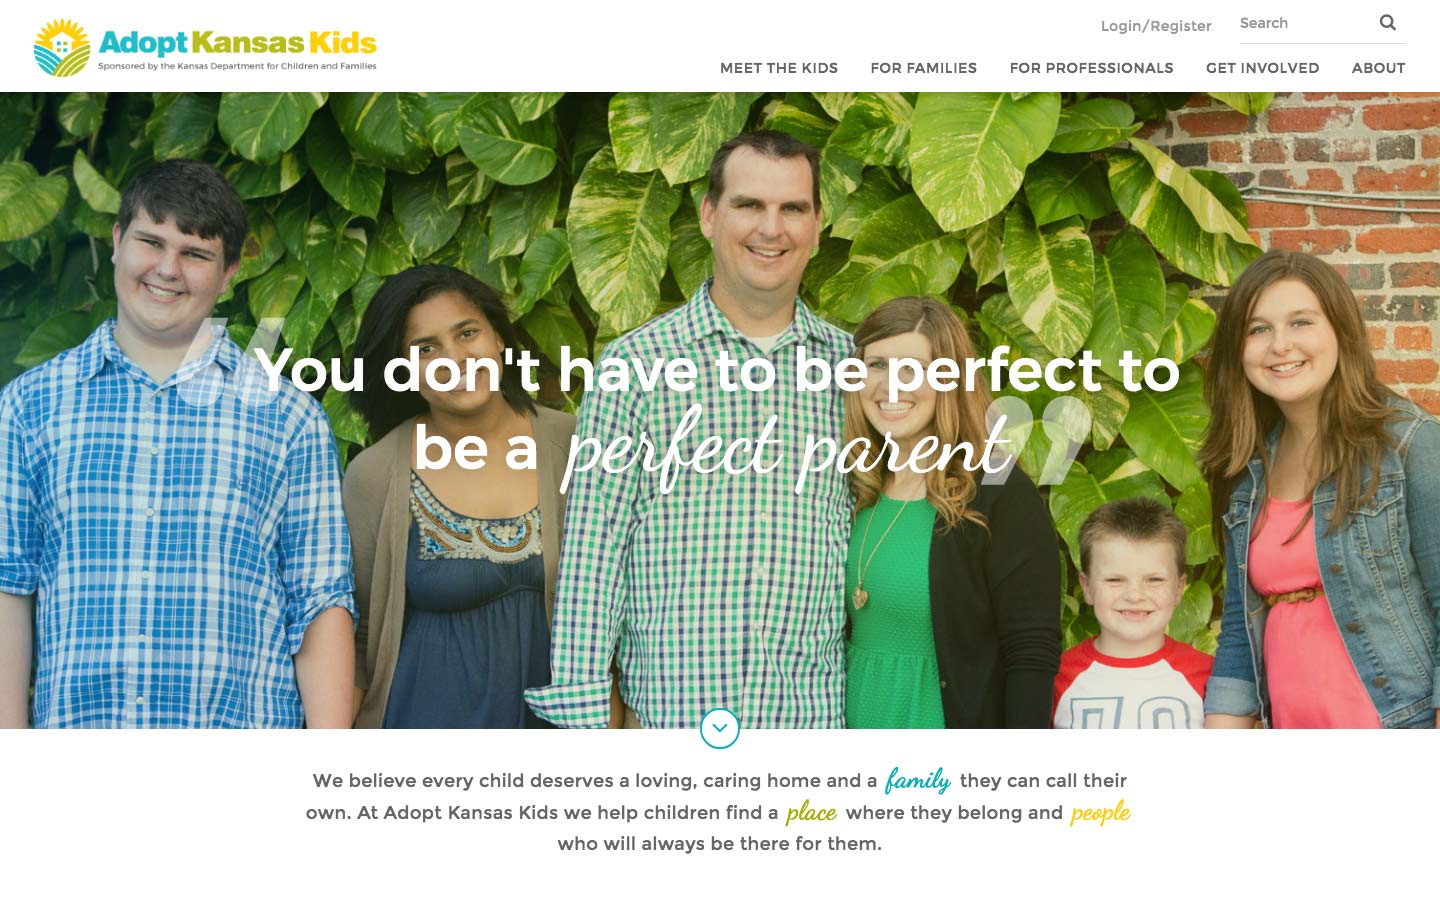 Adopt Kansas Kids website screenshot